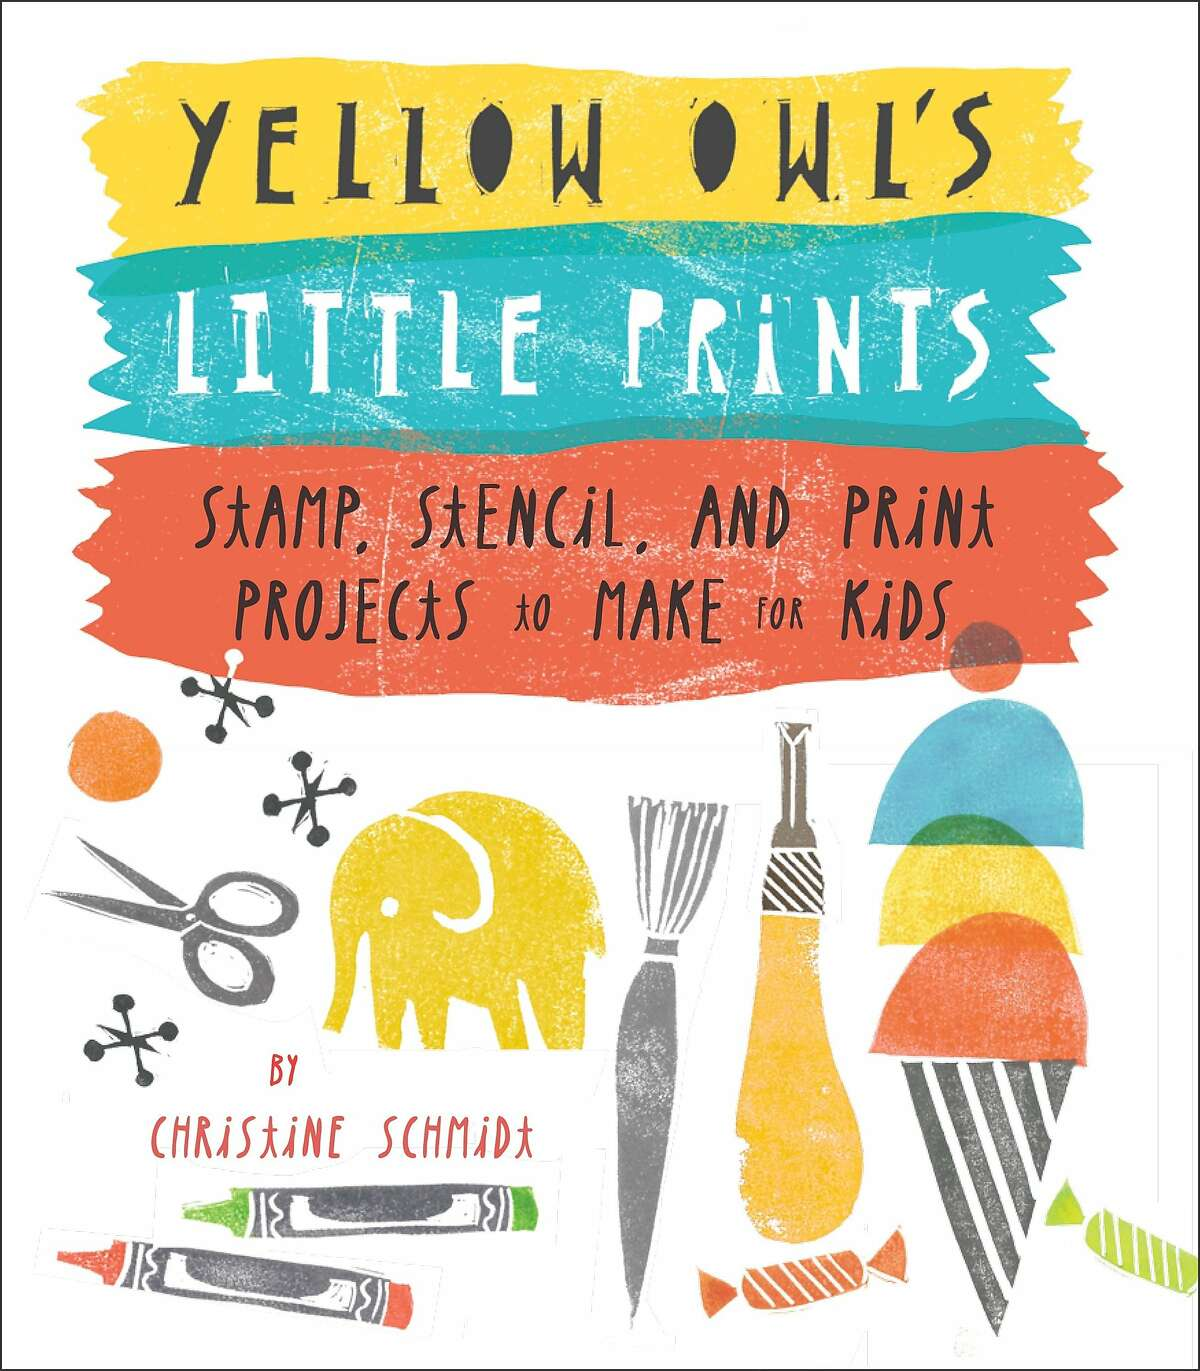 Yellow Owl's Little Prints: Stamp, Stencil and Print Porjects to Make for Kids, by Christine Schmidt